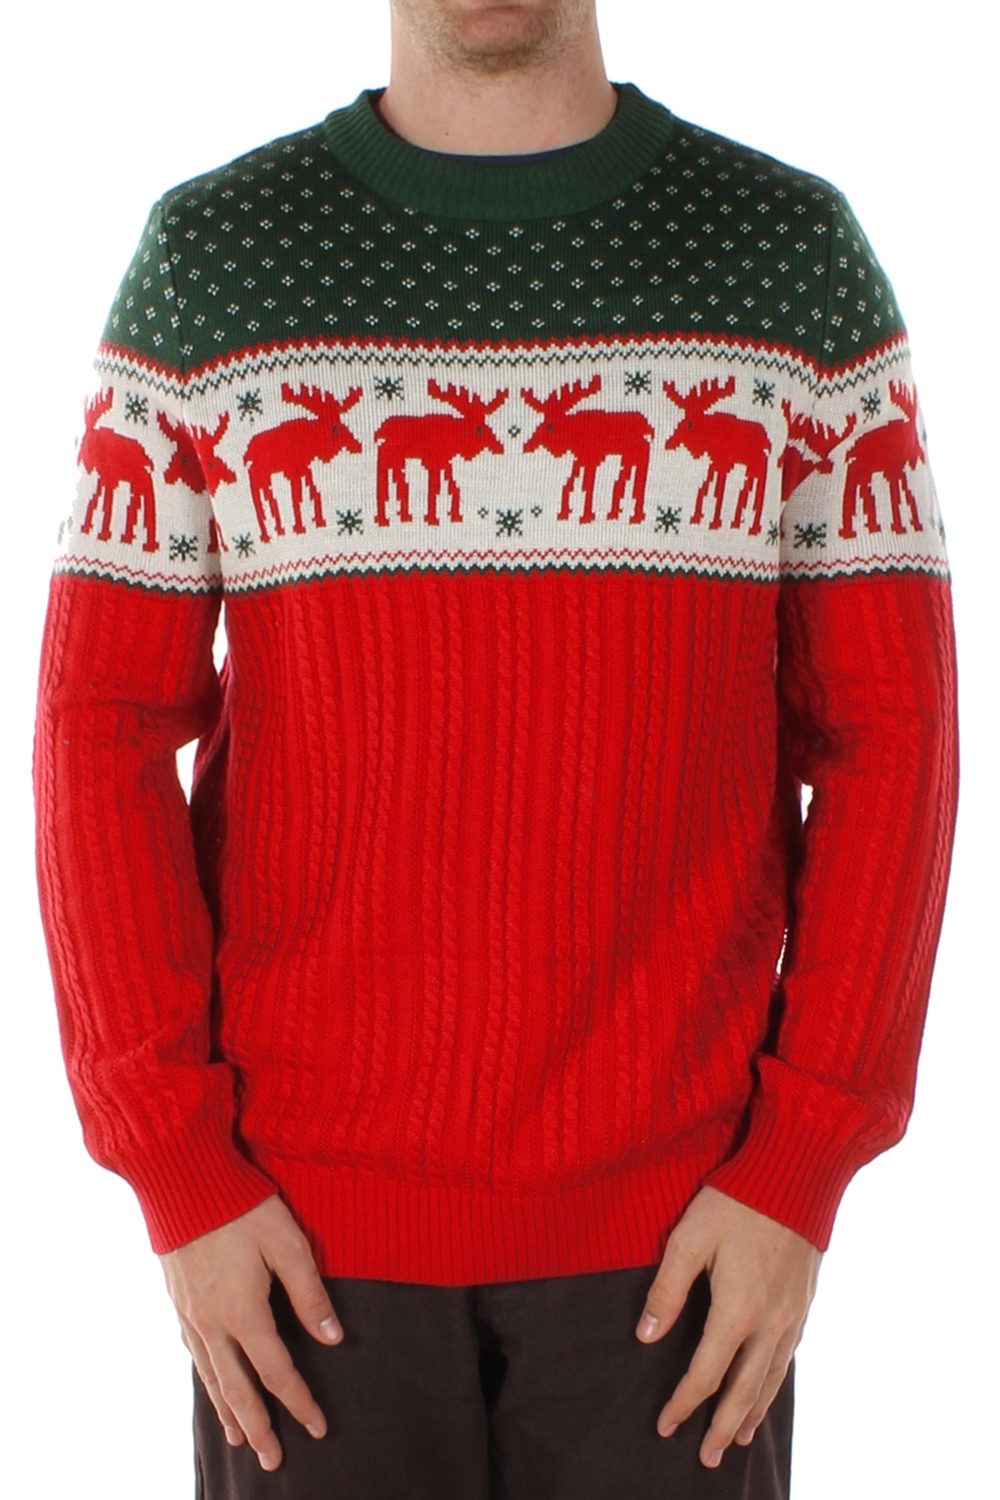 the night before movie moose christmas sweater